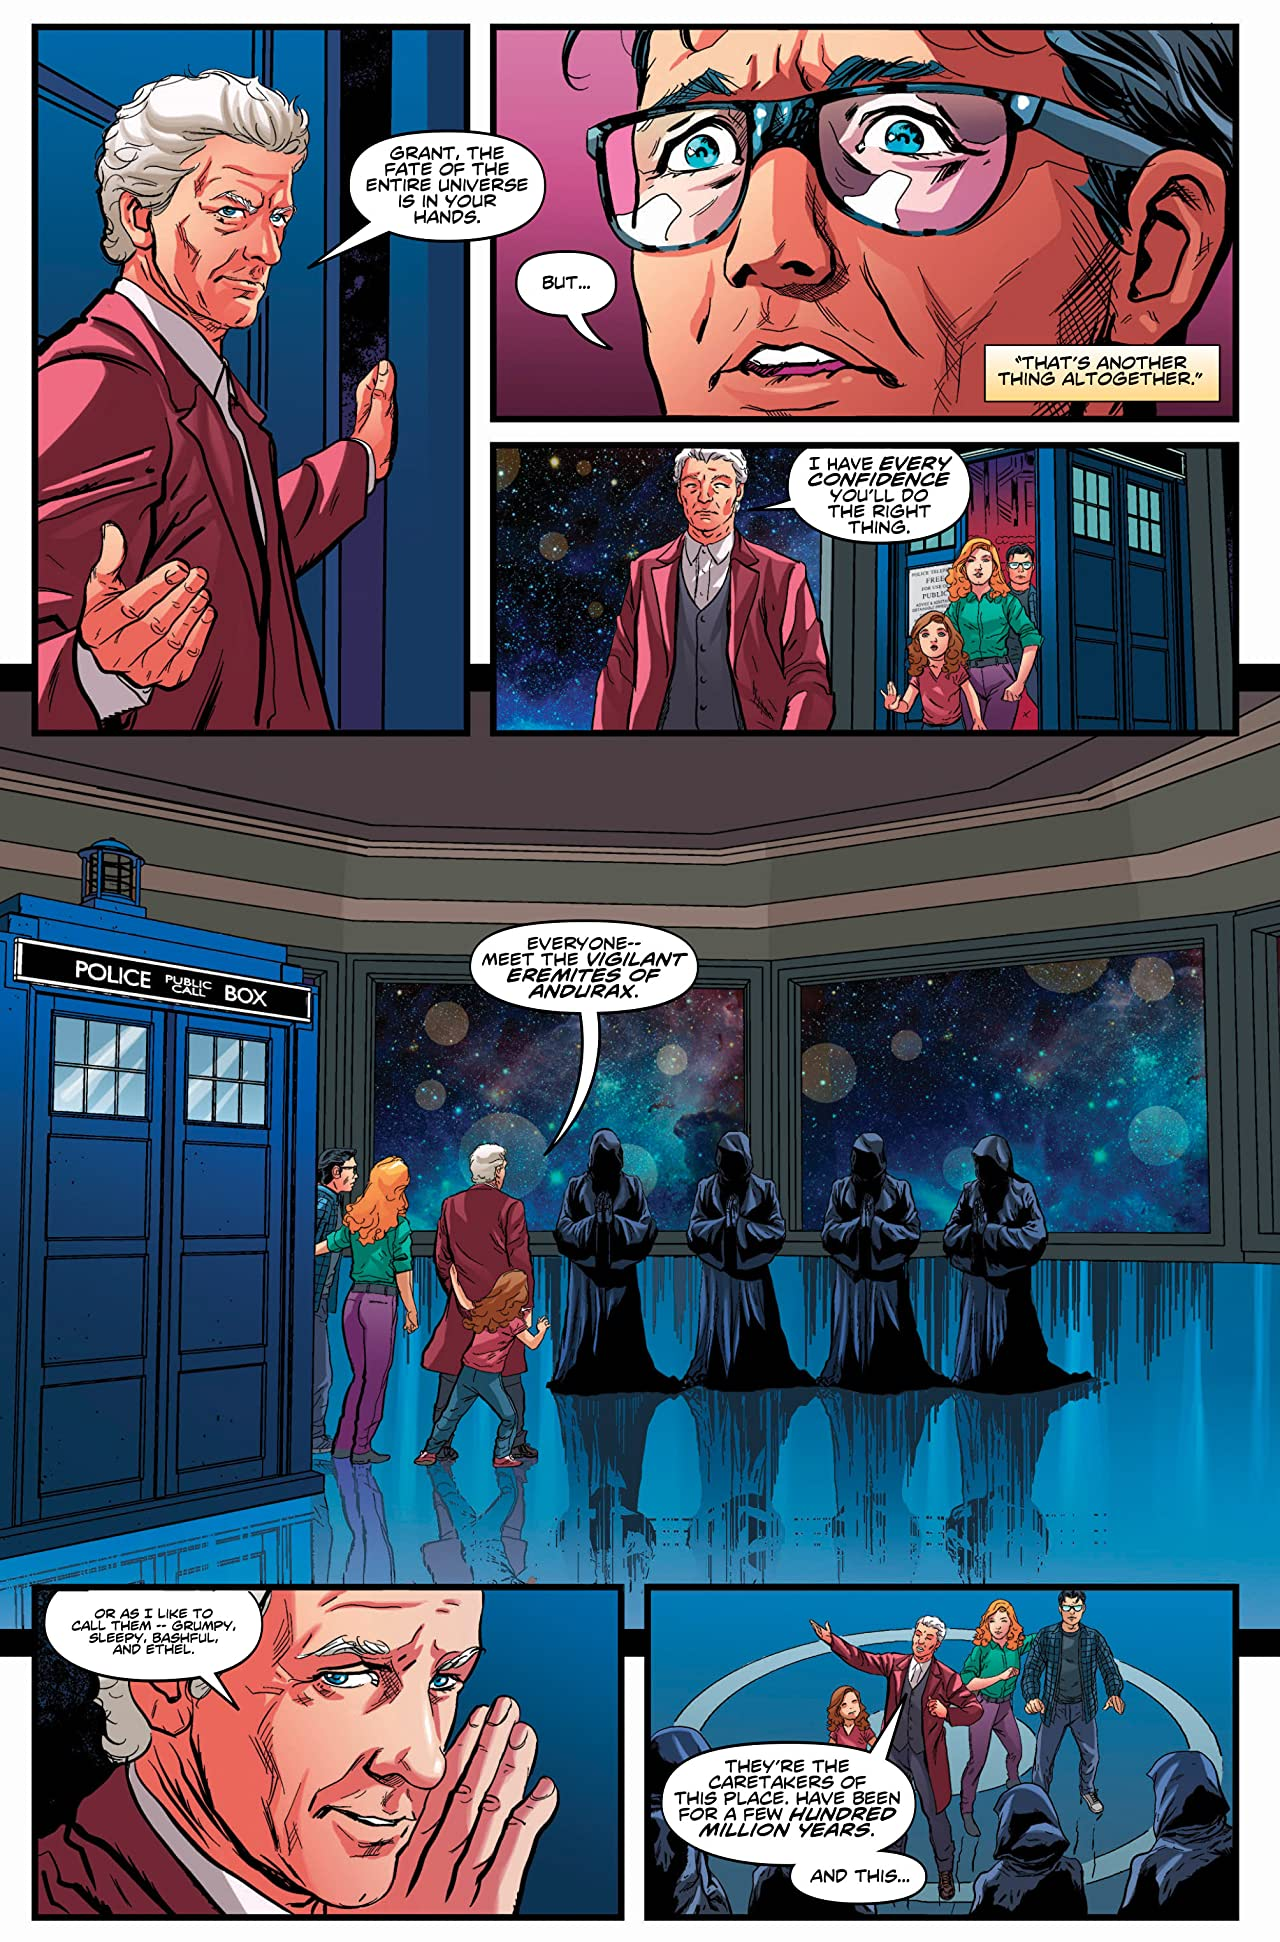 Doctor Who: Ghost Stories #8